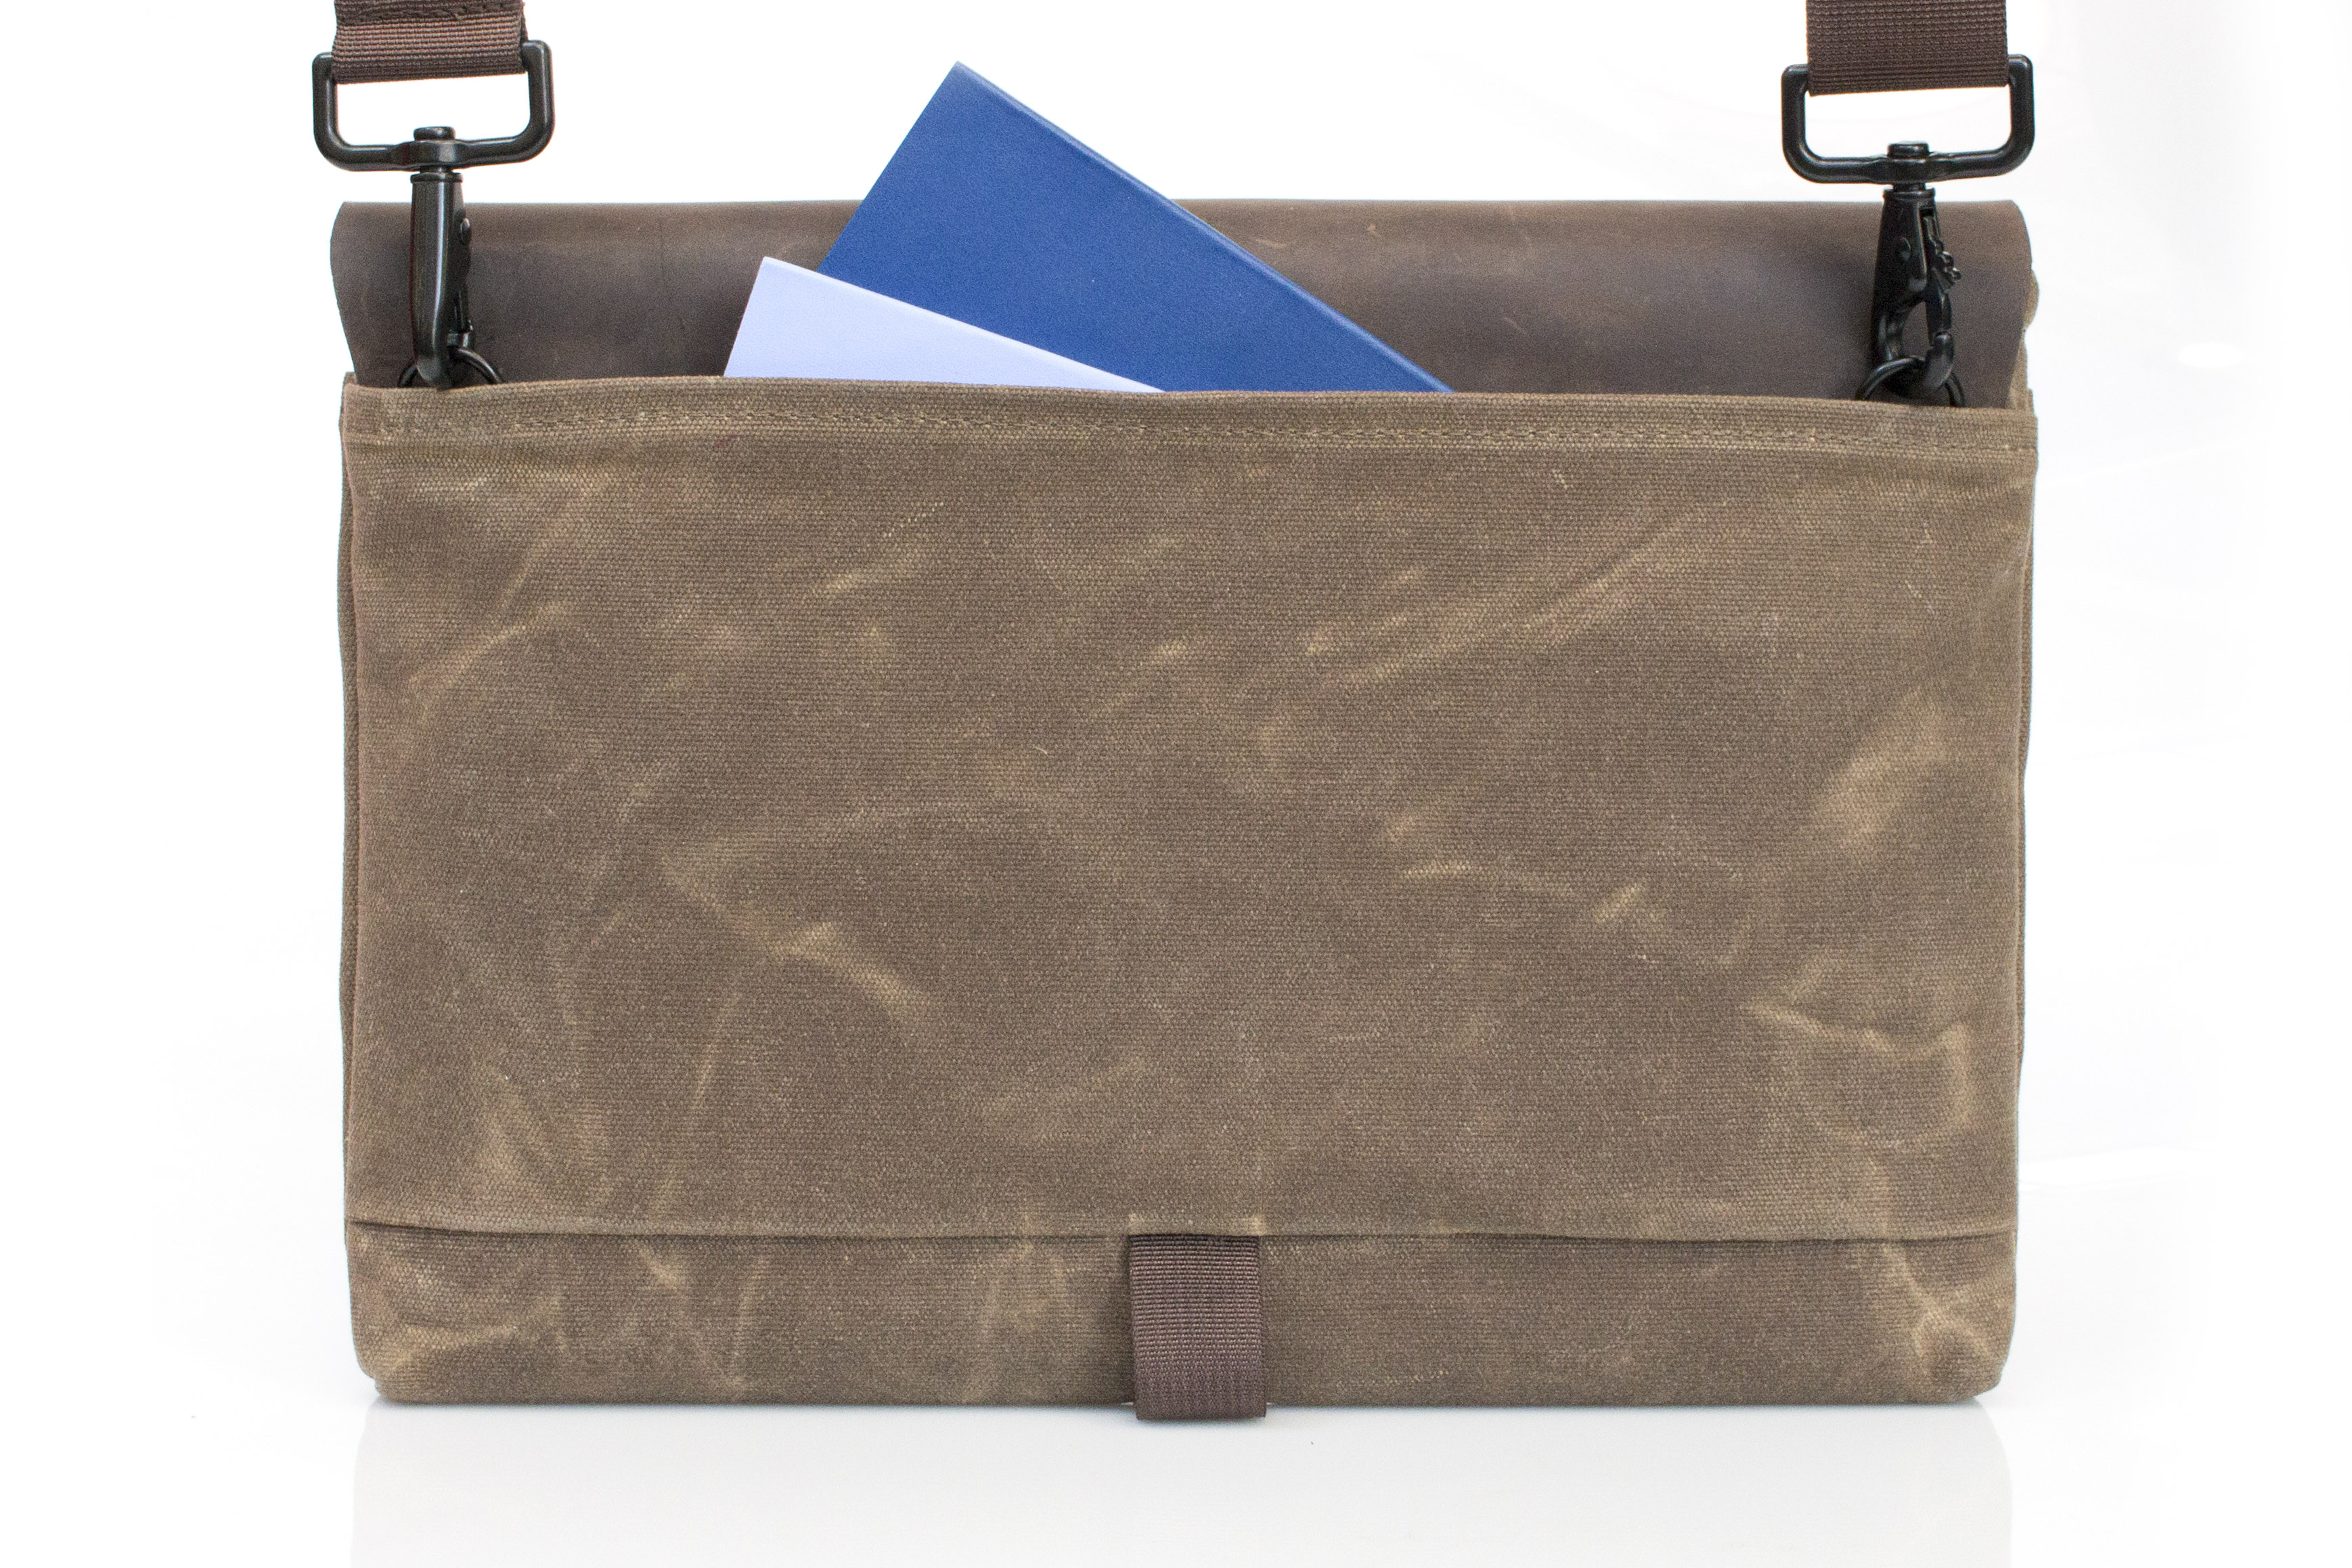 ac673c942a2b WaterField Unveils the Outback Solo 2.0 — a Compact Carry Case for ...